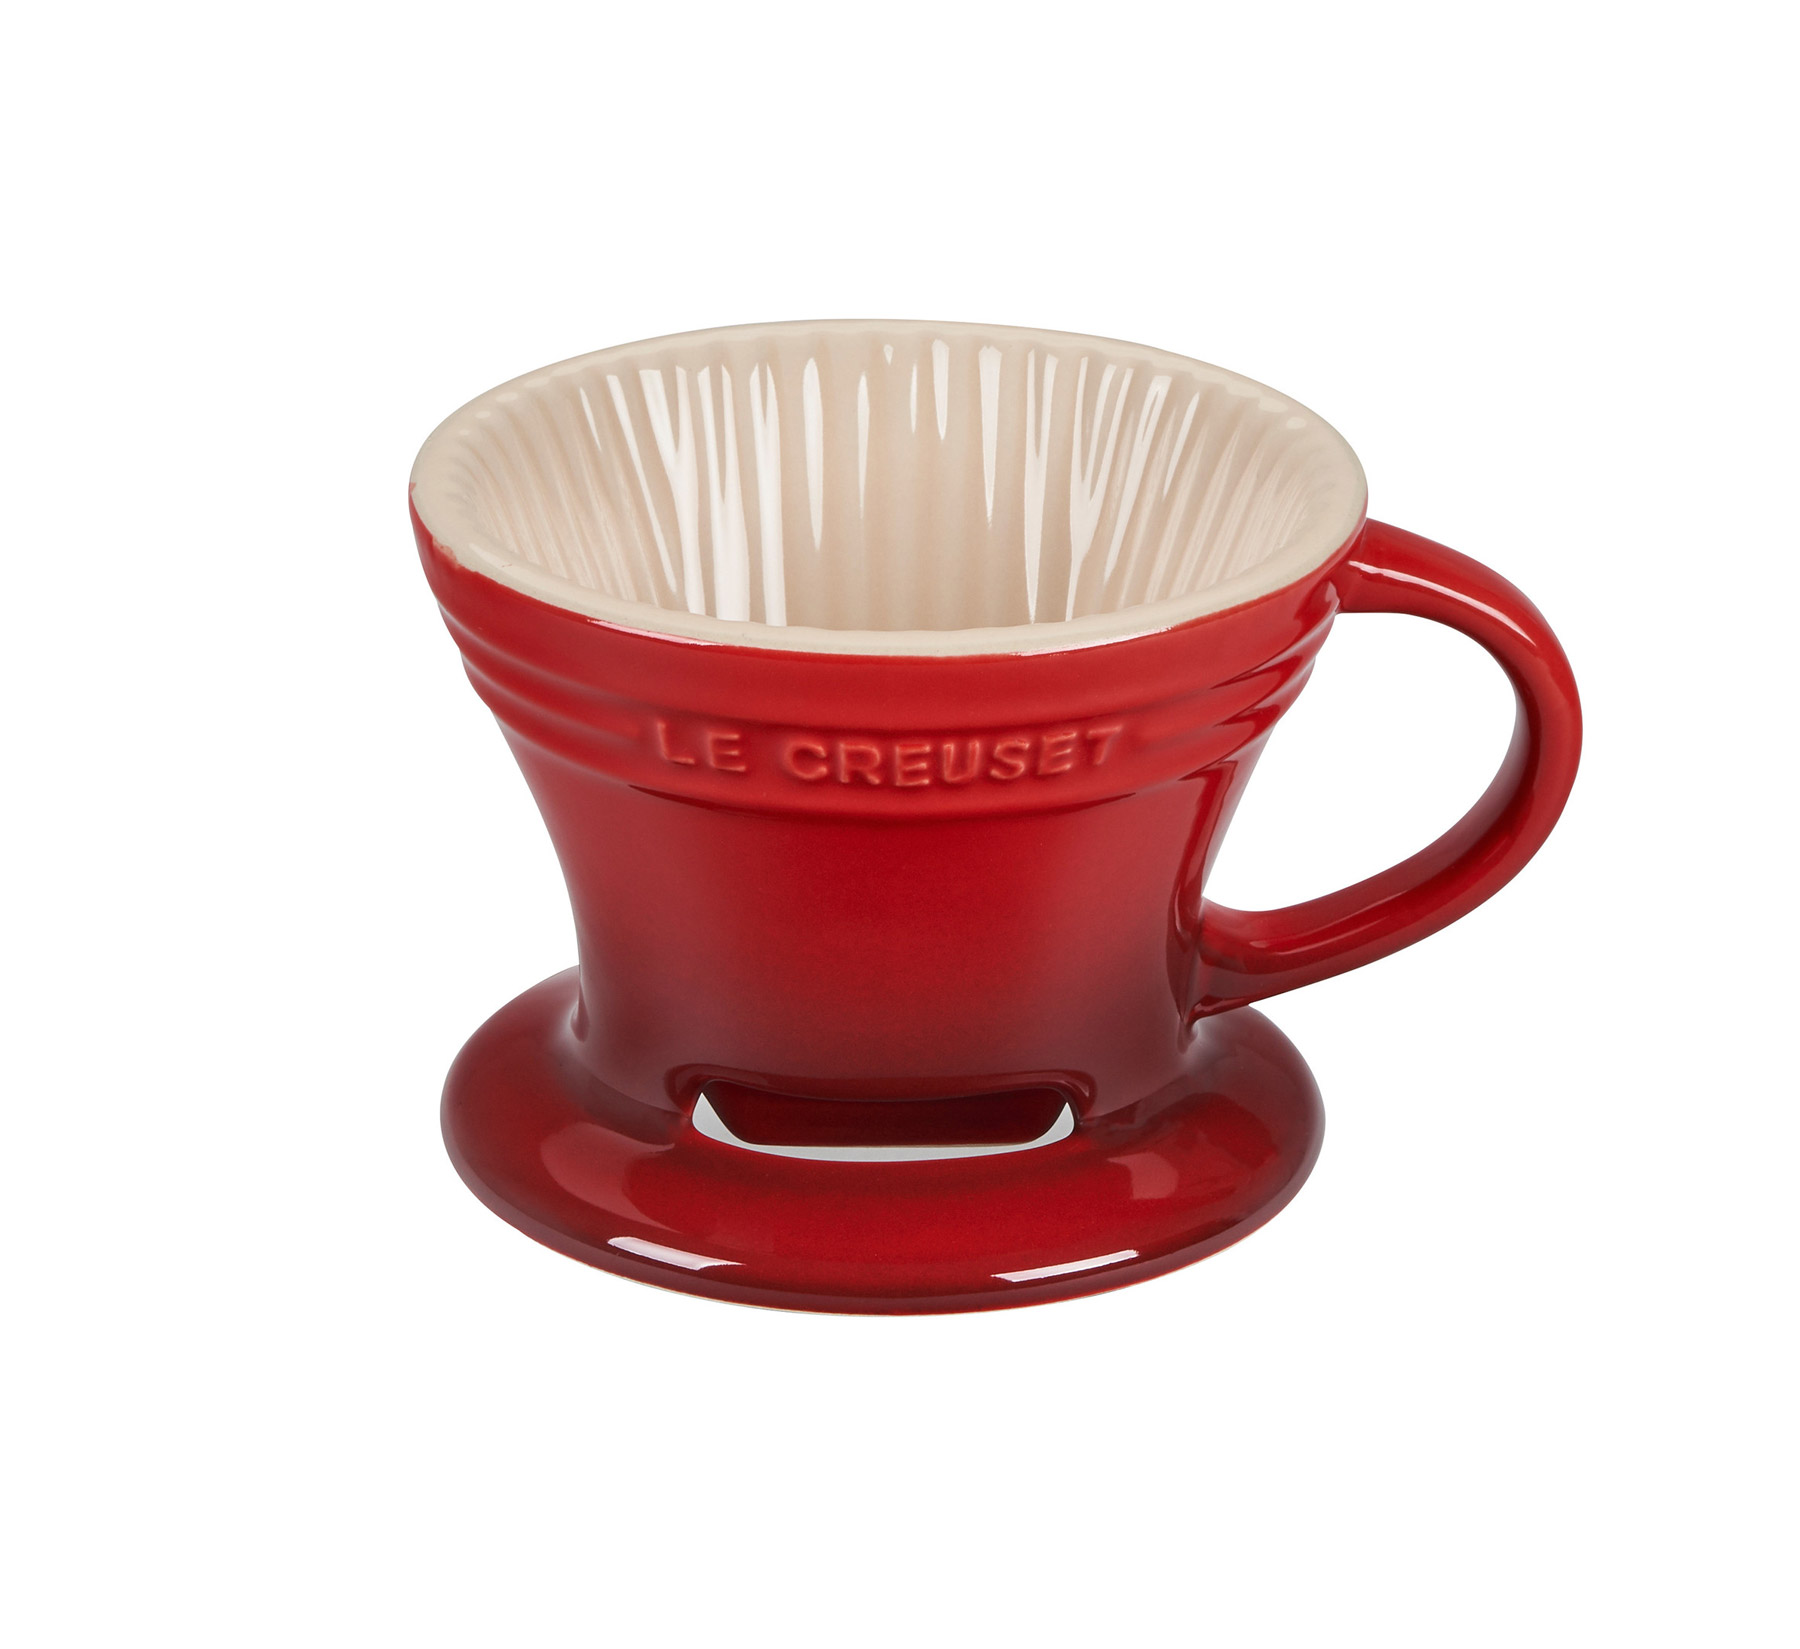 6 Clever Items 09/20/19 - Le Creuset Pour Over Coffee Cone